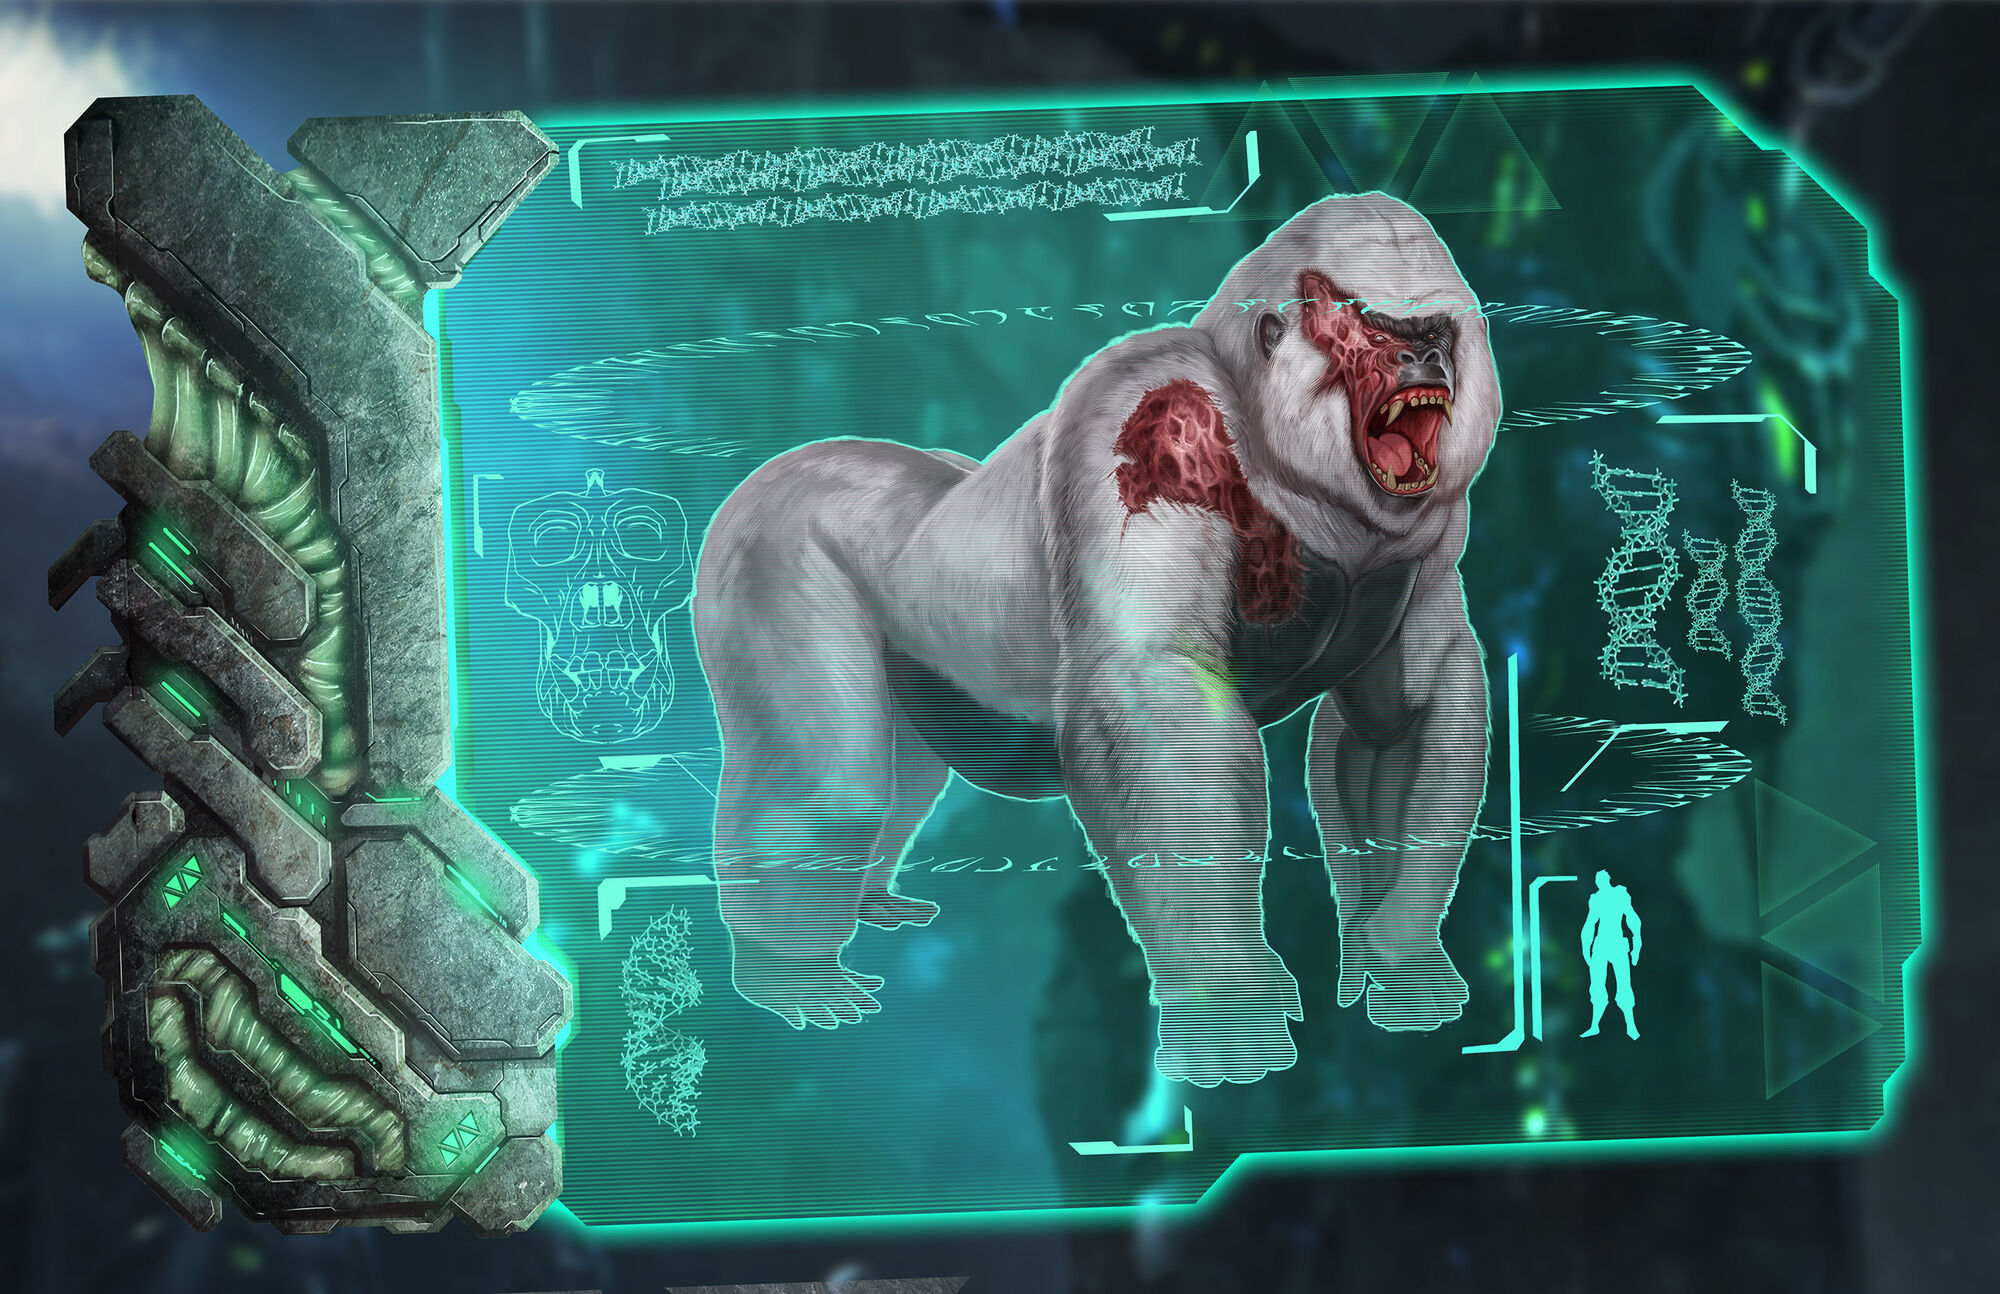 Megapithecus | ARK: Survival Evolved Wiki | FANDOM powered